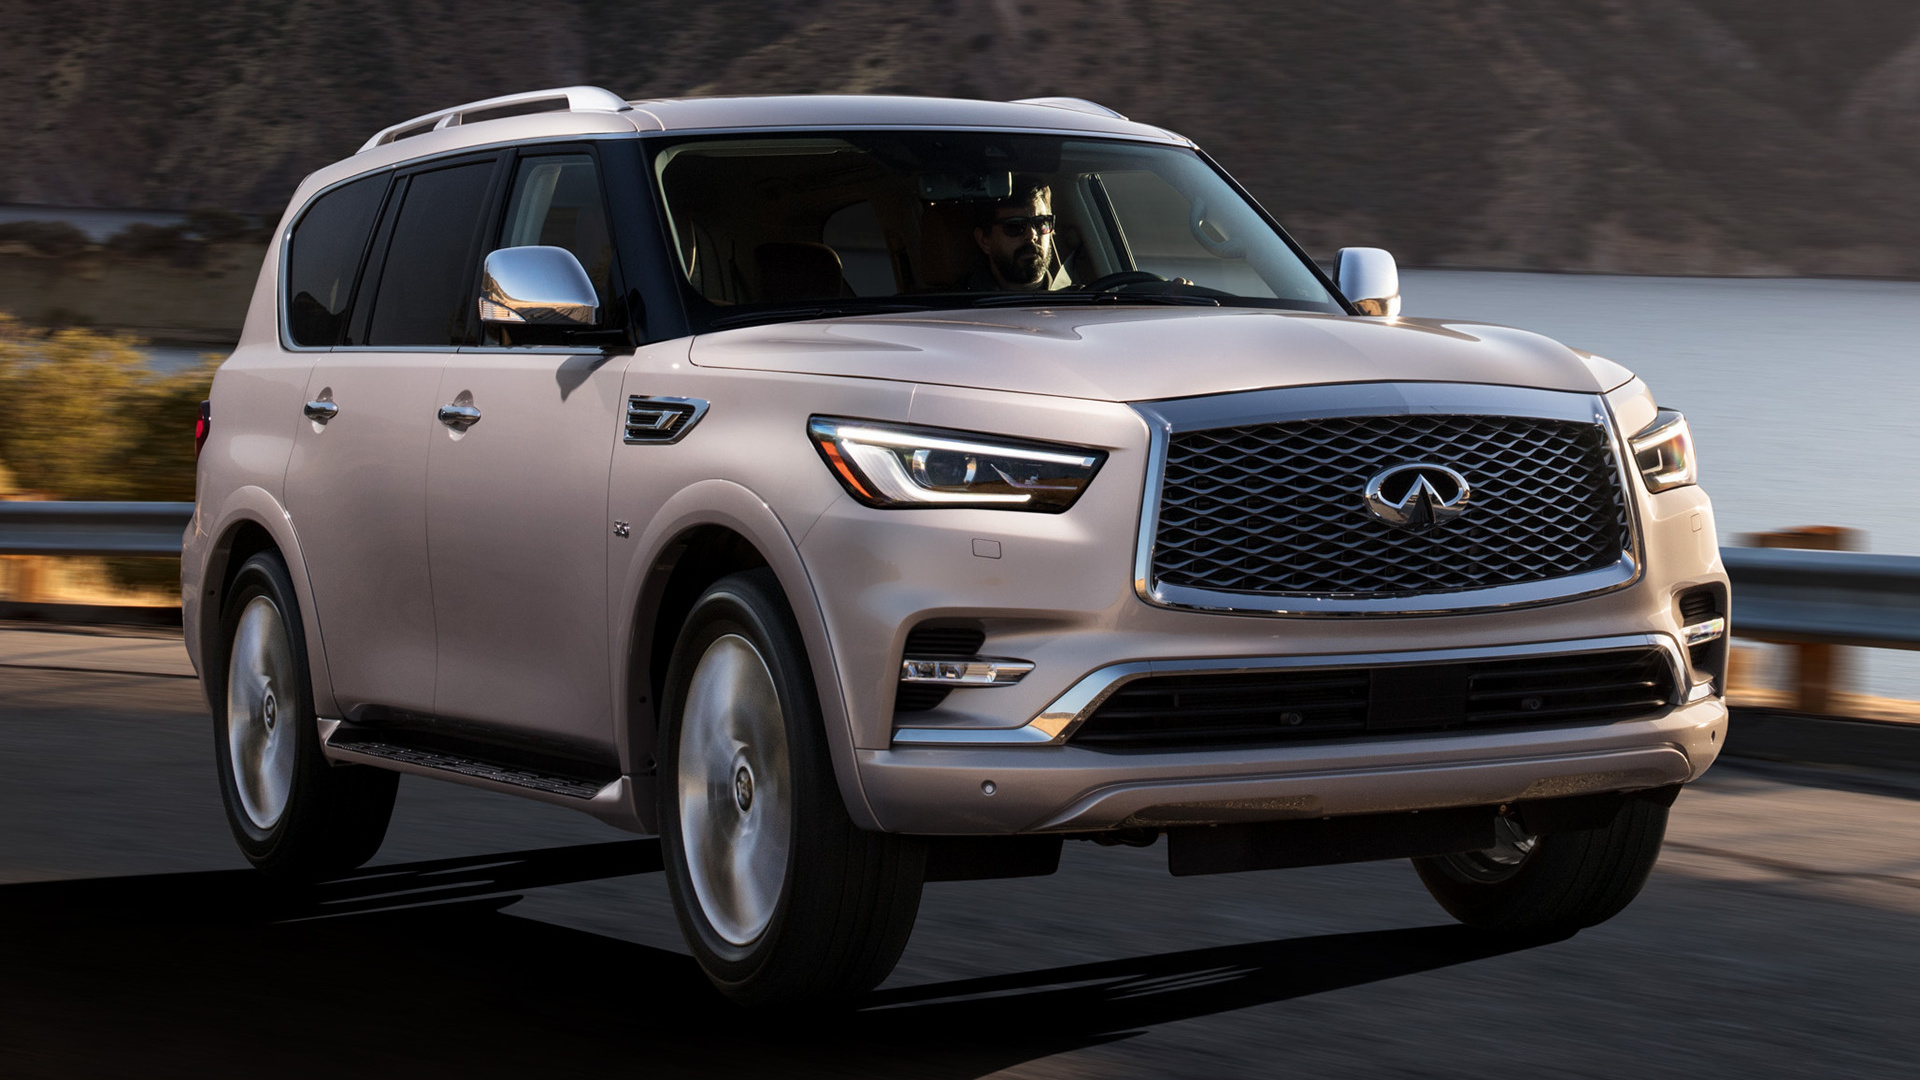 1920x1080 - Infiniti QX80 Wallpapers 30